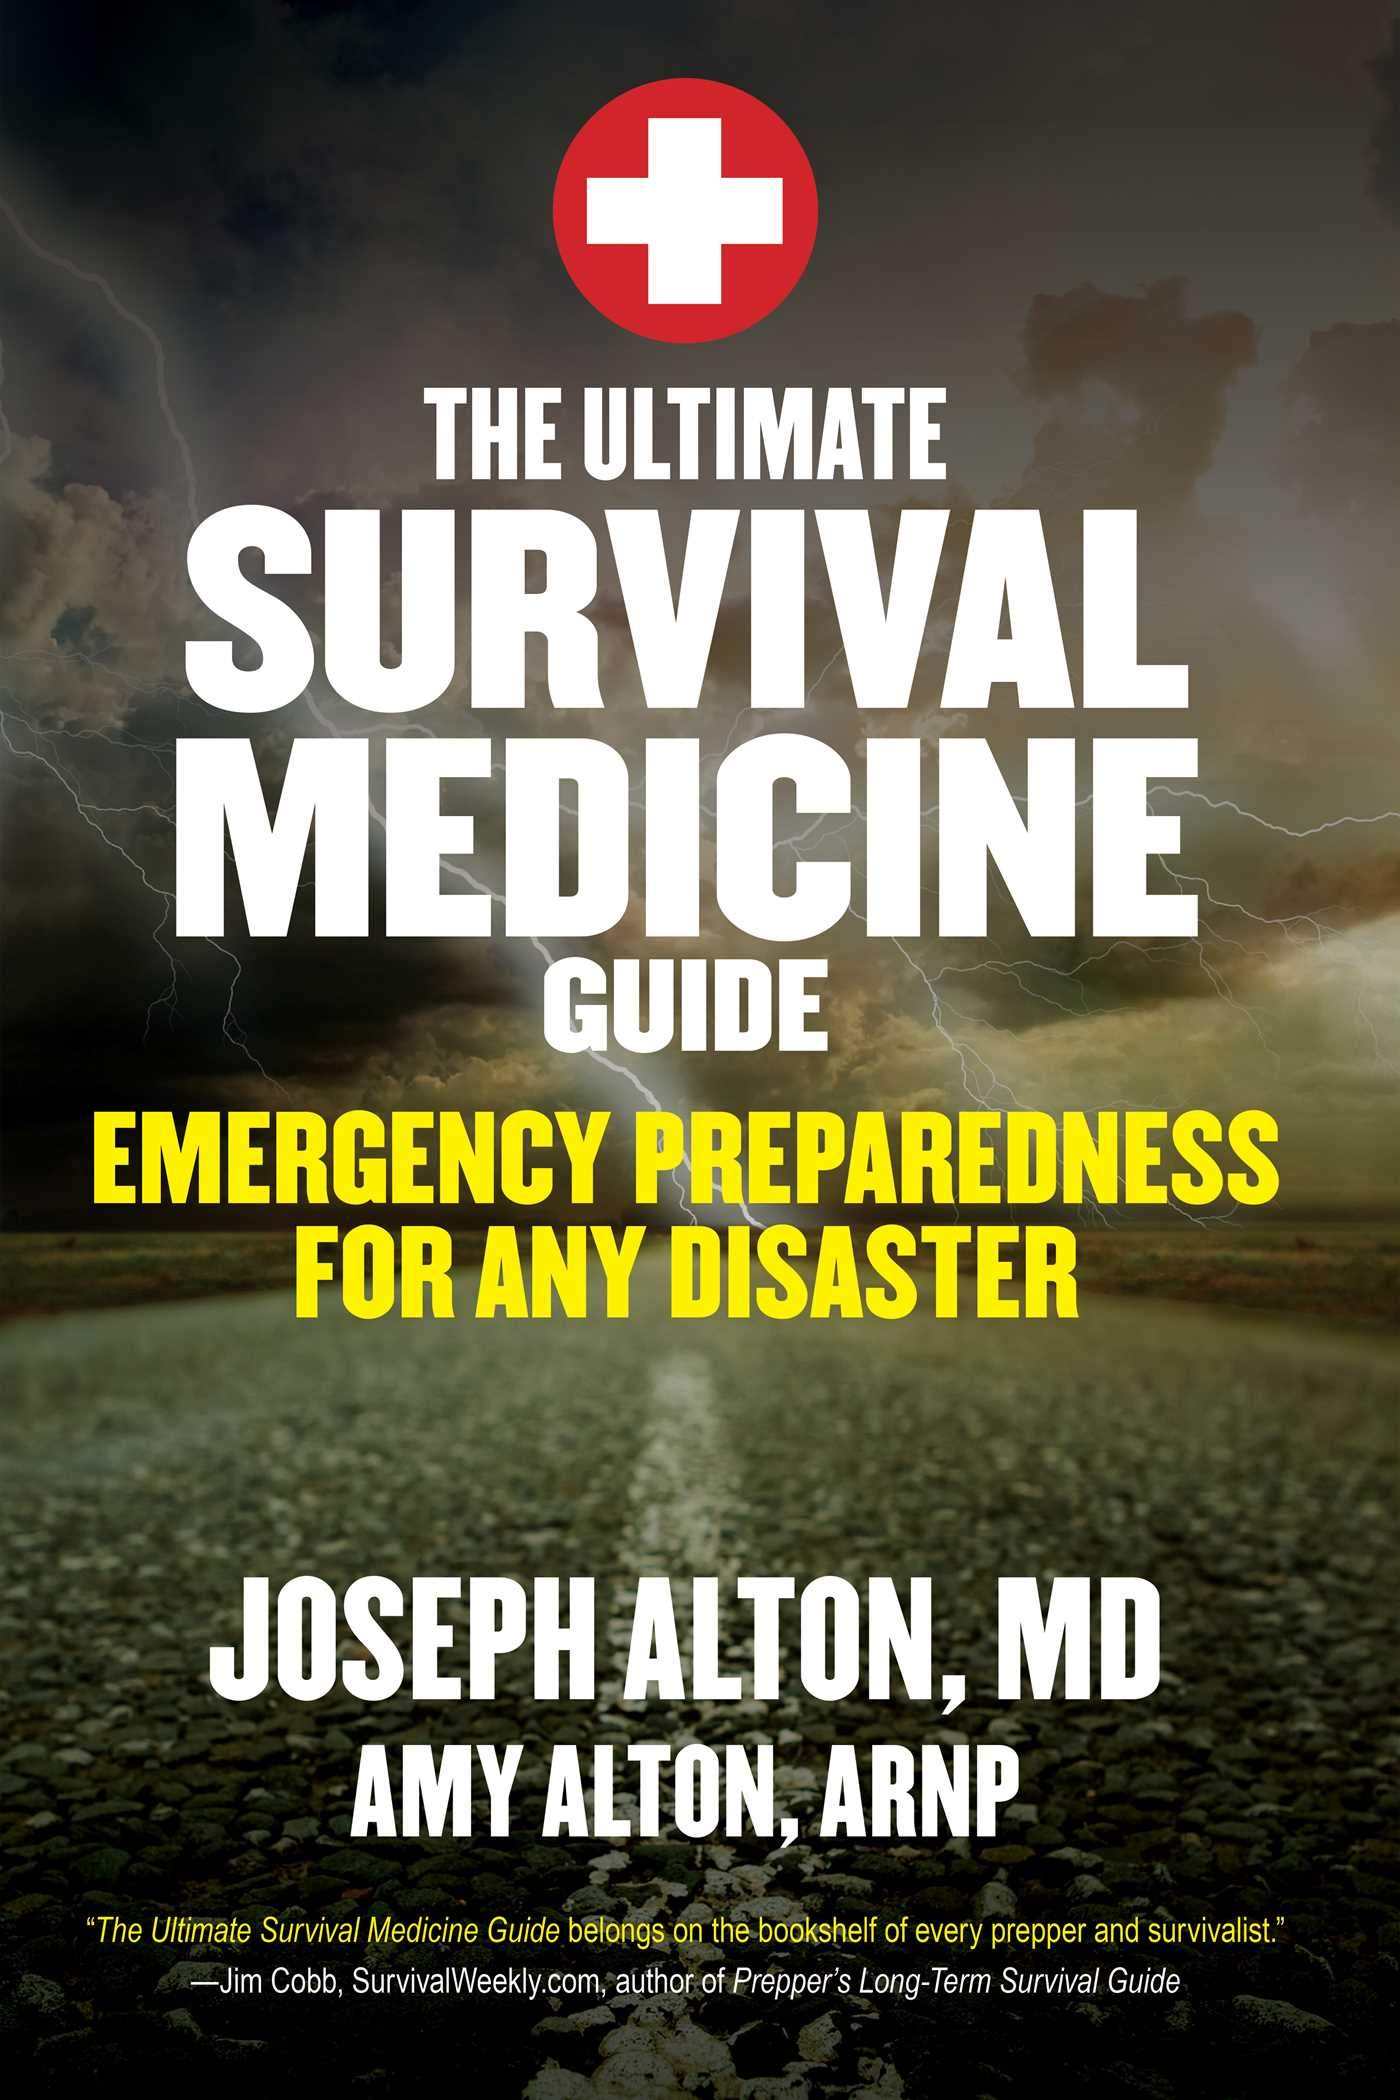 The Ultimate Survival Medicine Guide: Emergency Preparedness for ANY Disaster, by Joseph and Amy Alton - Survival (and Other) Books About the COVID-19 Coronavirus - Survival Books - Survival, Sustainable Living